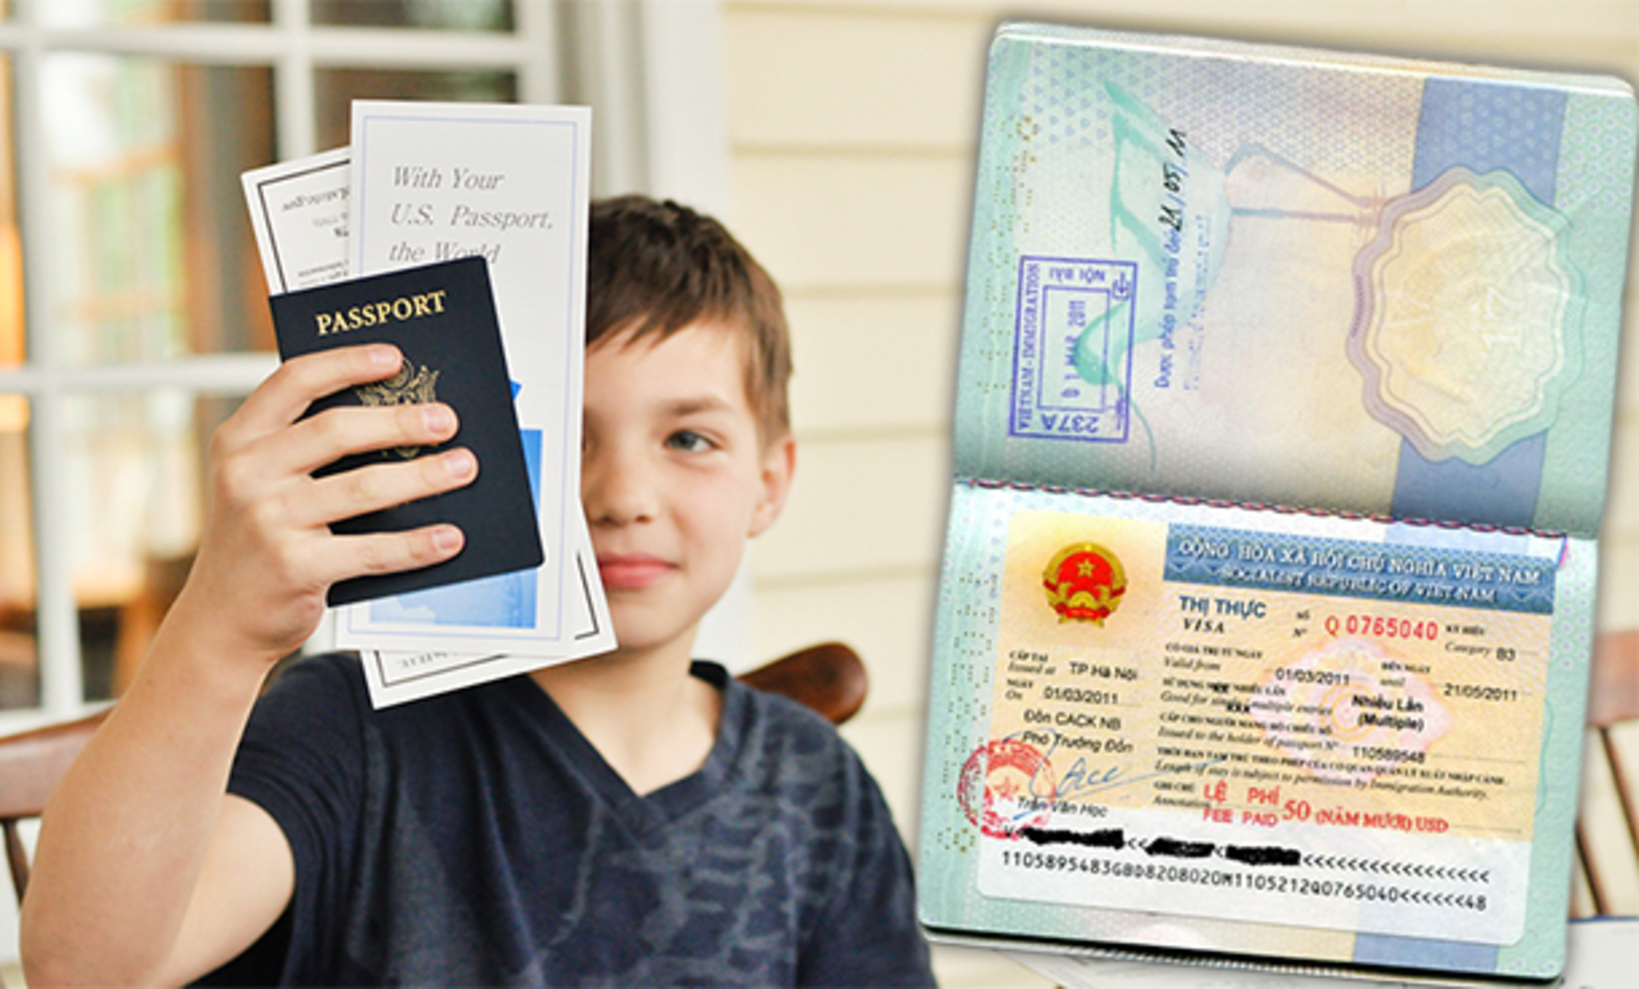 Do I need a visa to visit Vietnam? If yes, how should I apply?